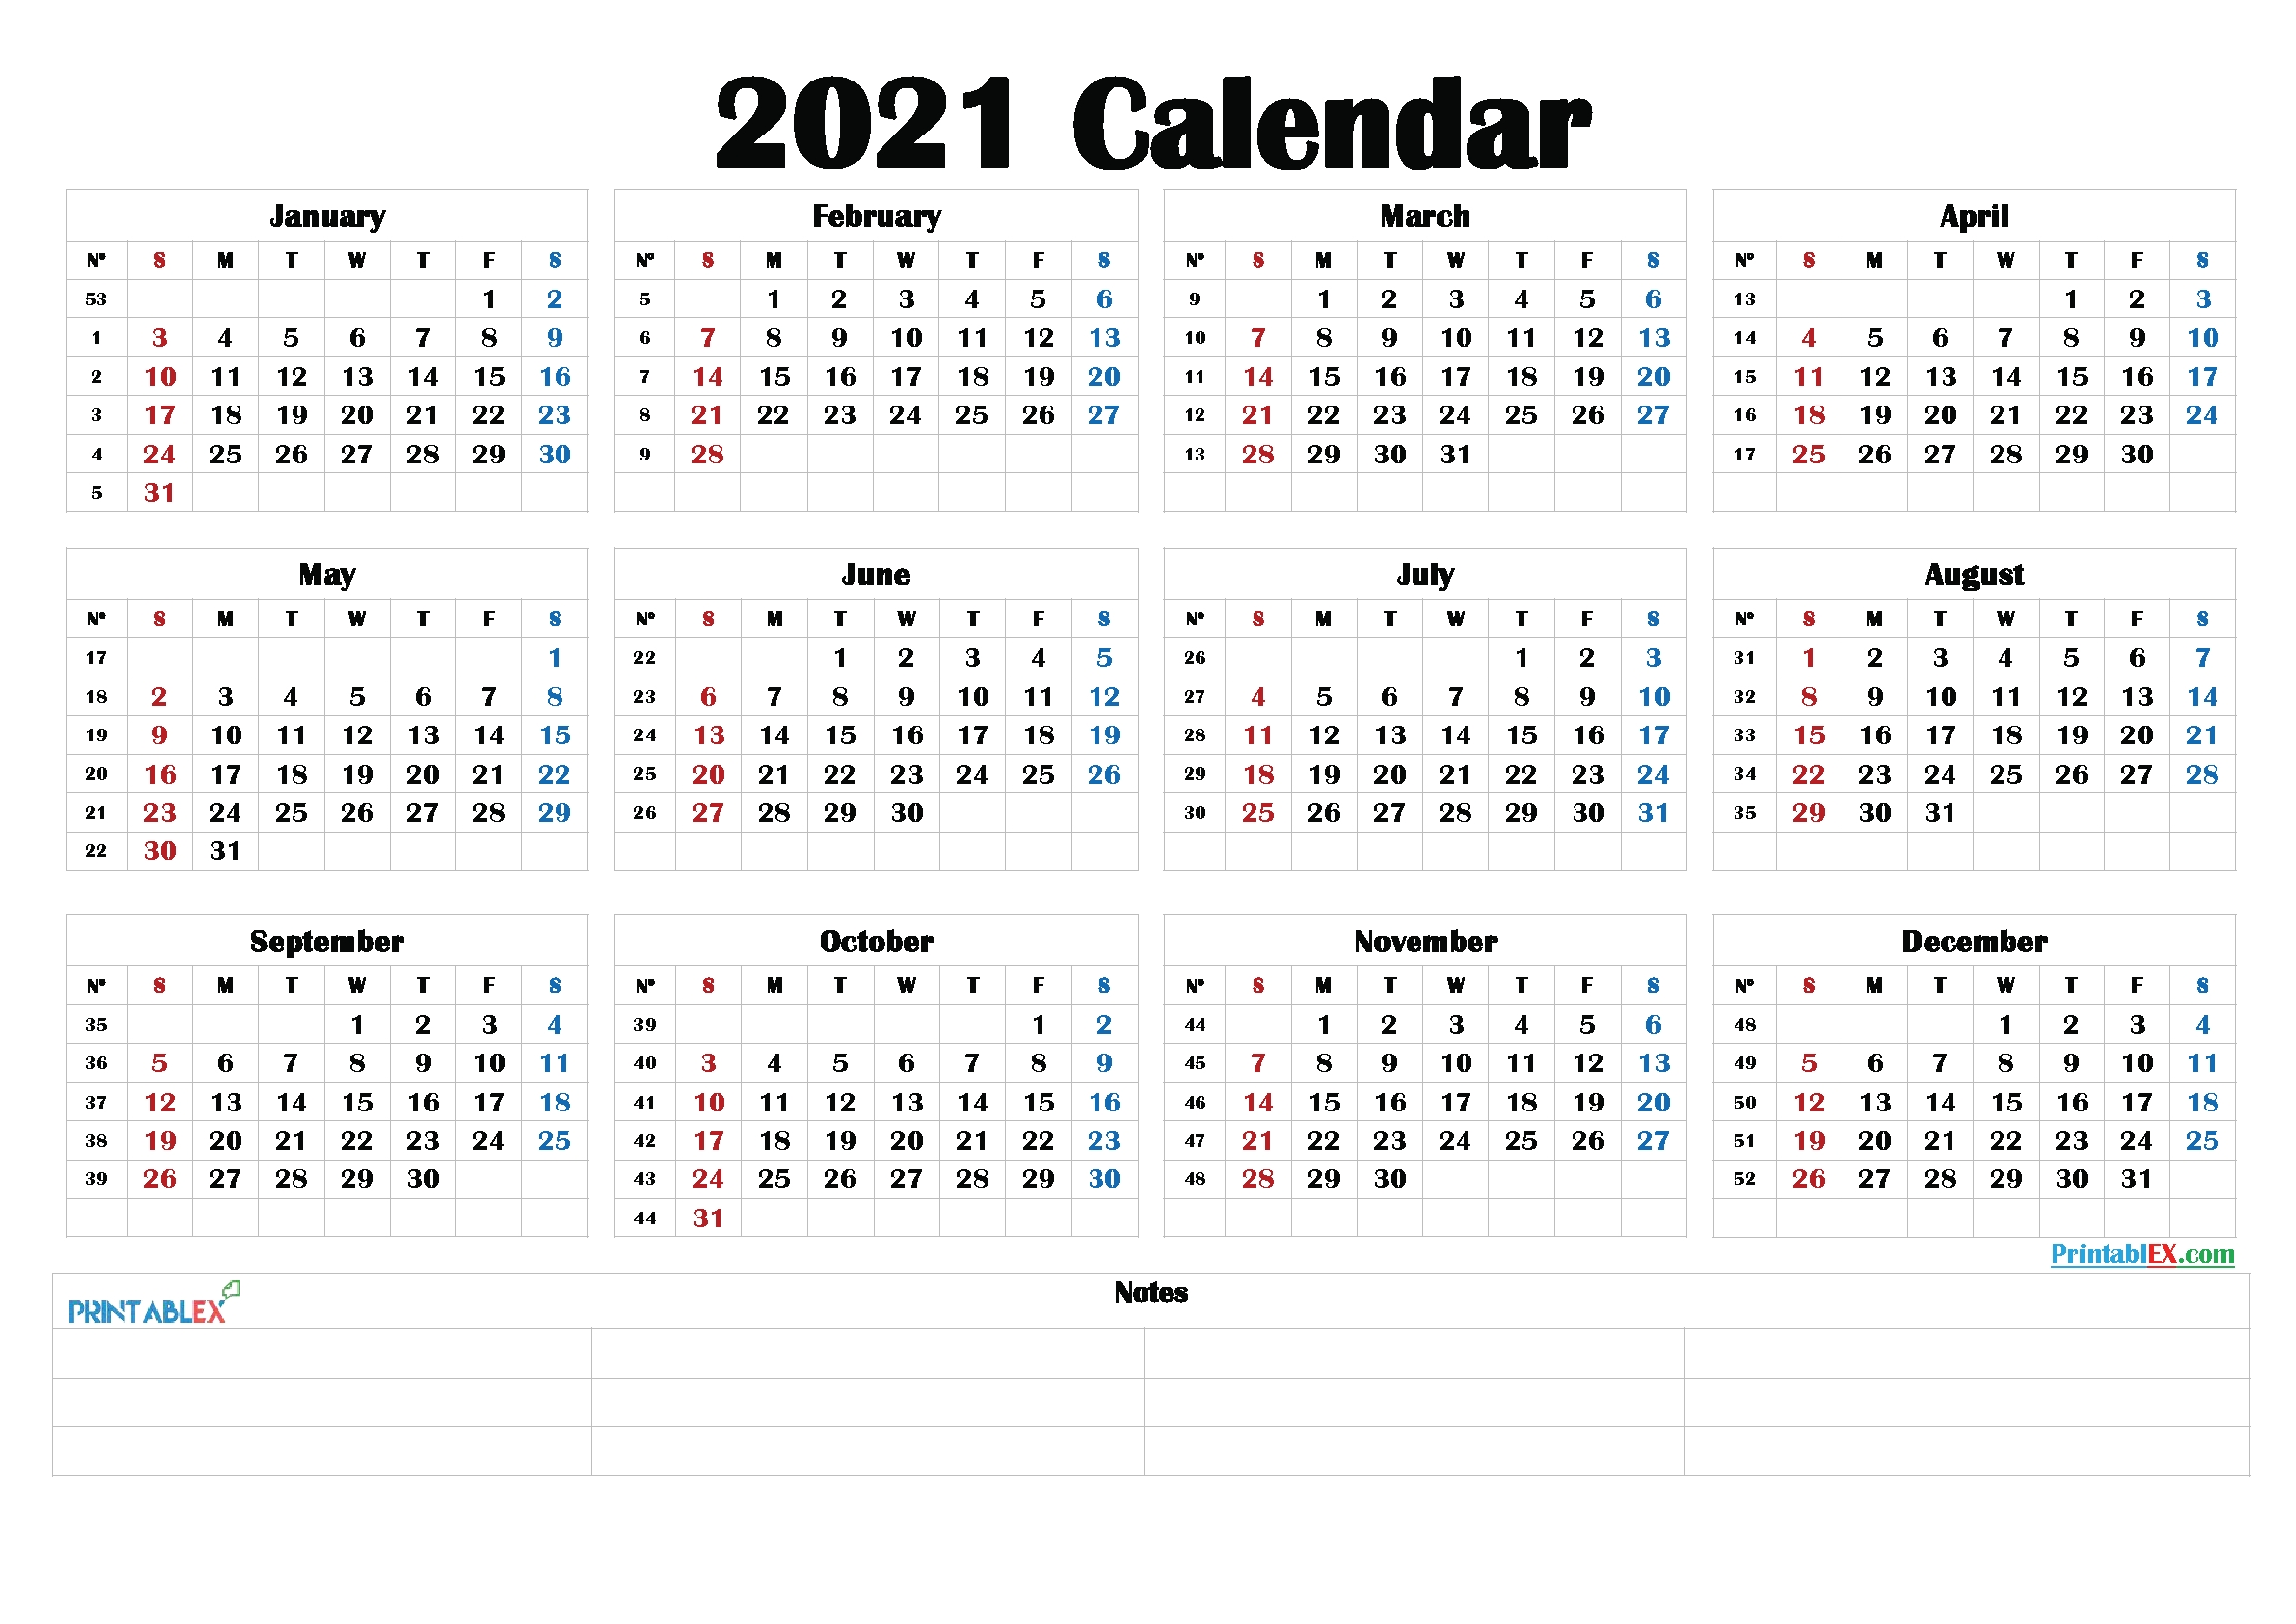 free 2021 yearly calender template : 2021 printable yearly